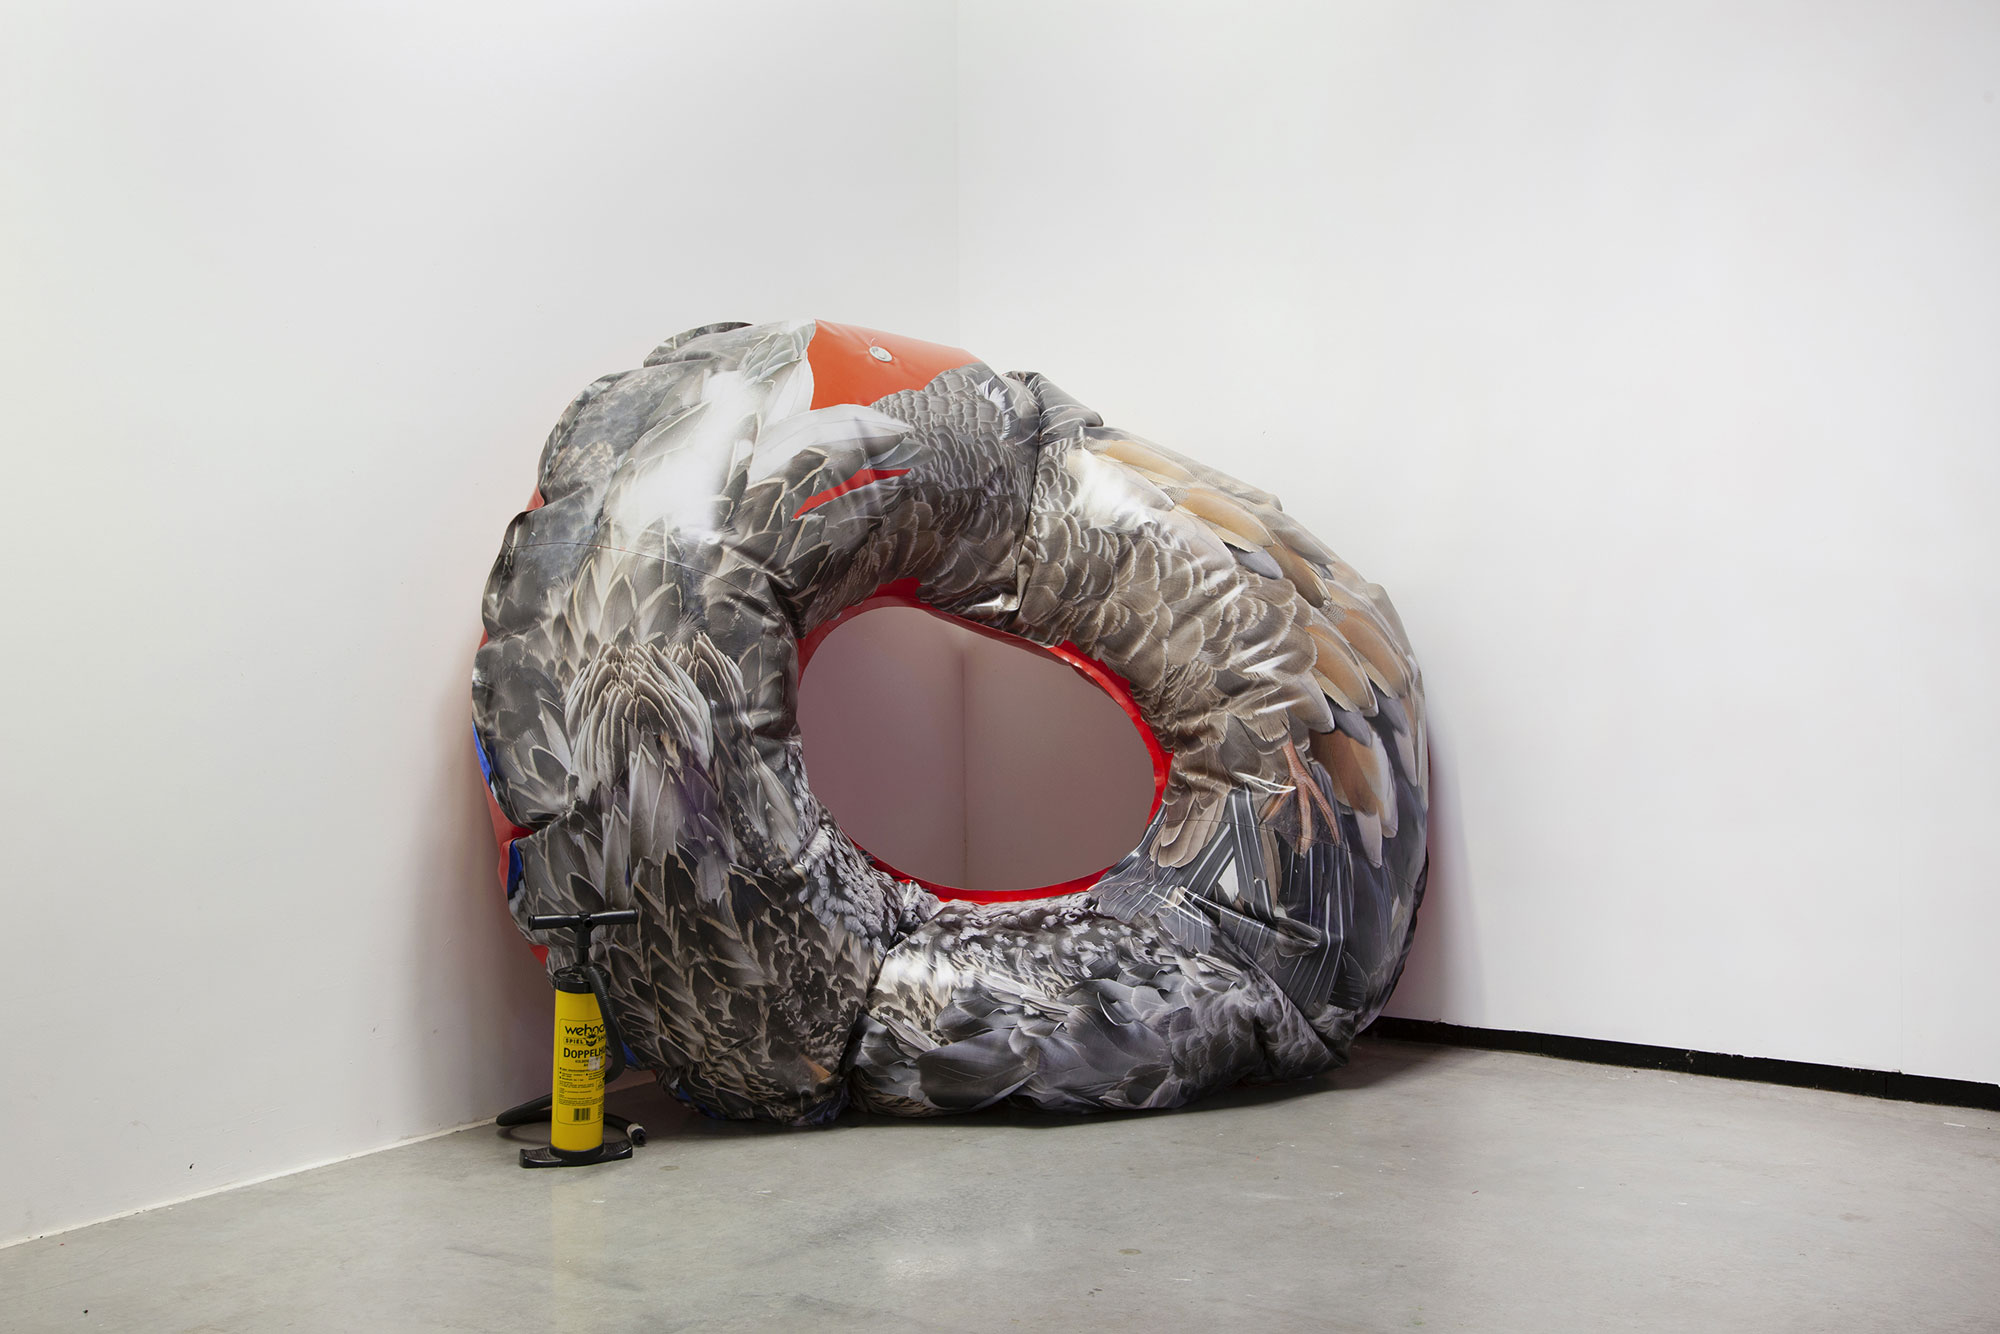 Medusa : floating body #3, feathered floating ring, printed PVC, 180x200x50cm, installation view, 2020